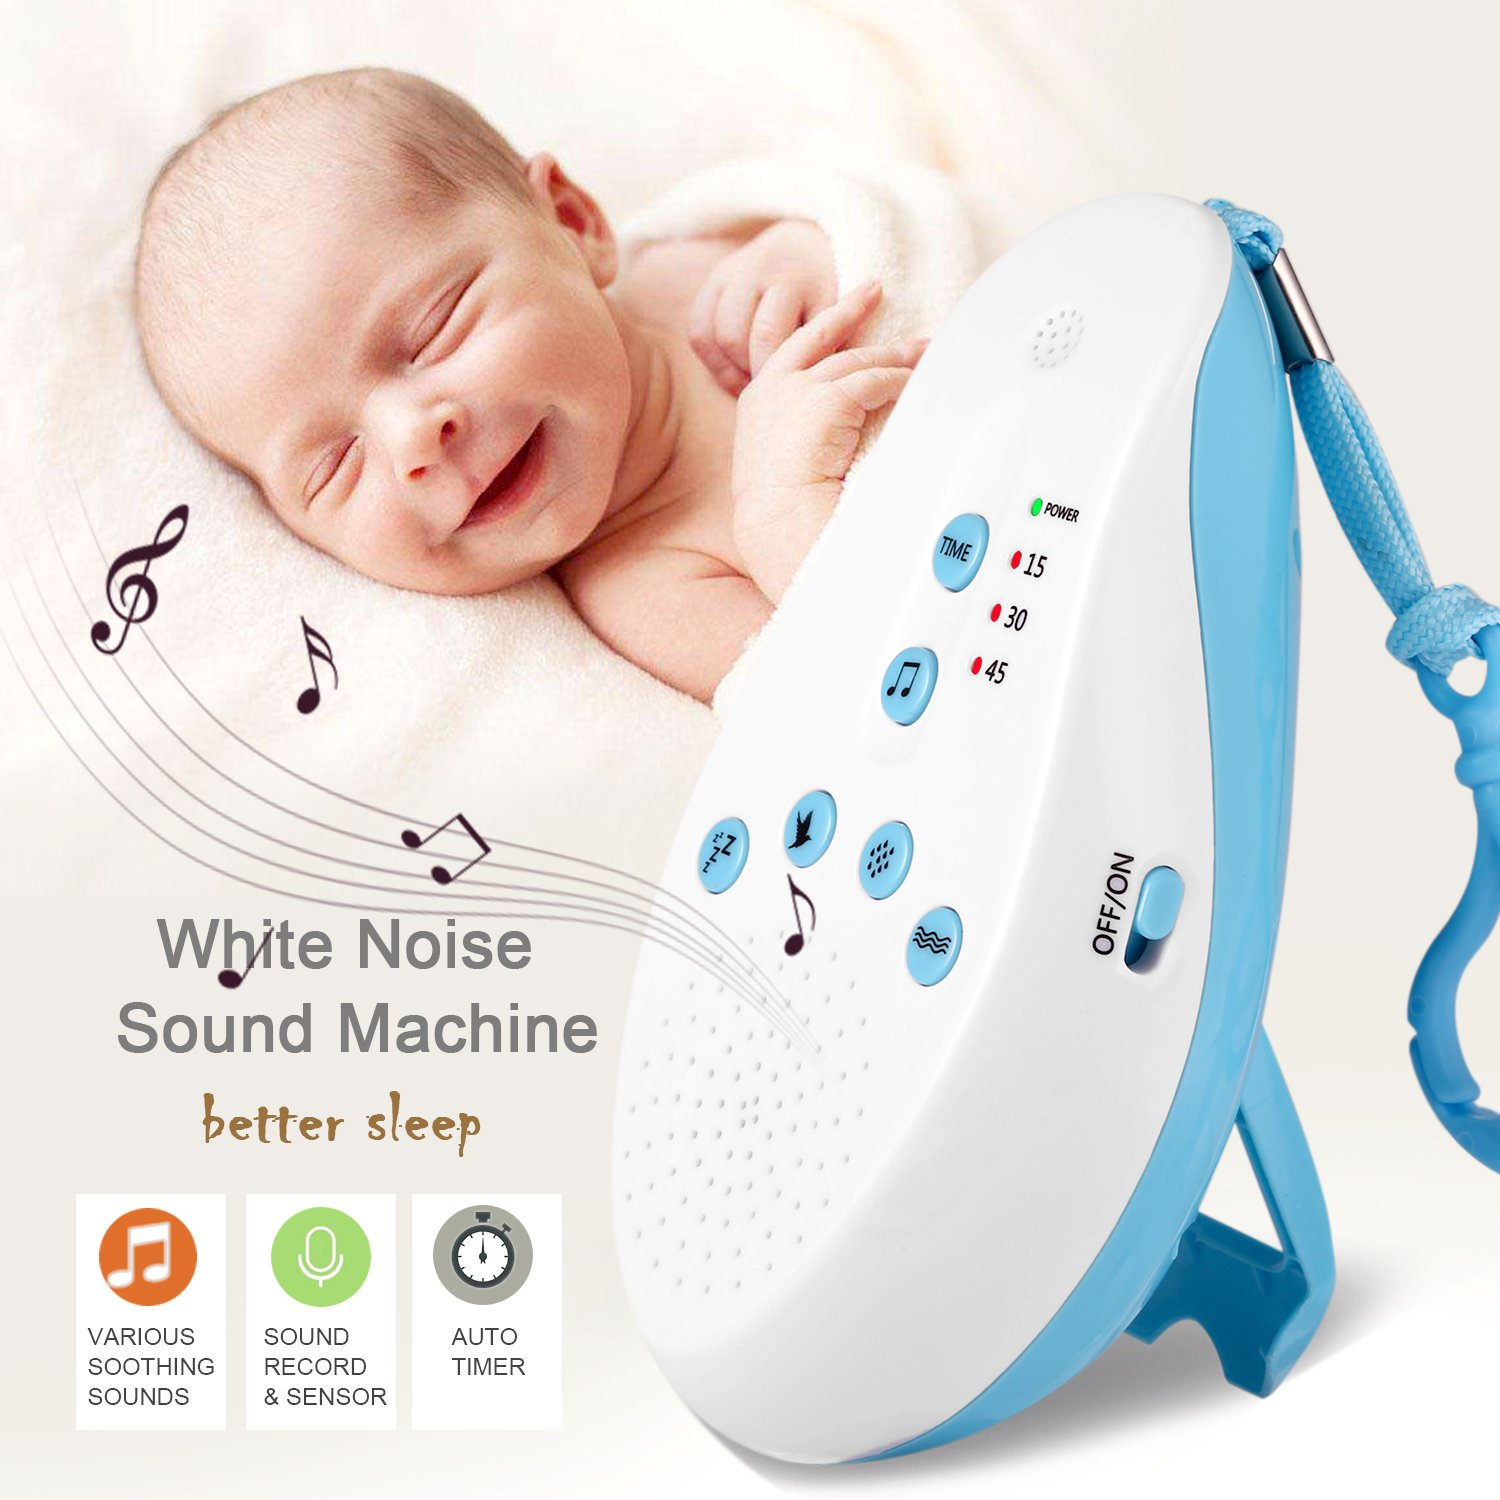 Otivs S7 White Noise Machine Sleep Sound Machine with Shut-Off Timer, Voice Recorder, Adjustable Volume, 7 Natural Soothing Therapy Sounds for Baby, Infants, Kids, Adults [Upgraded 2018]